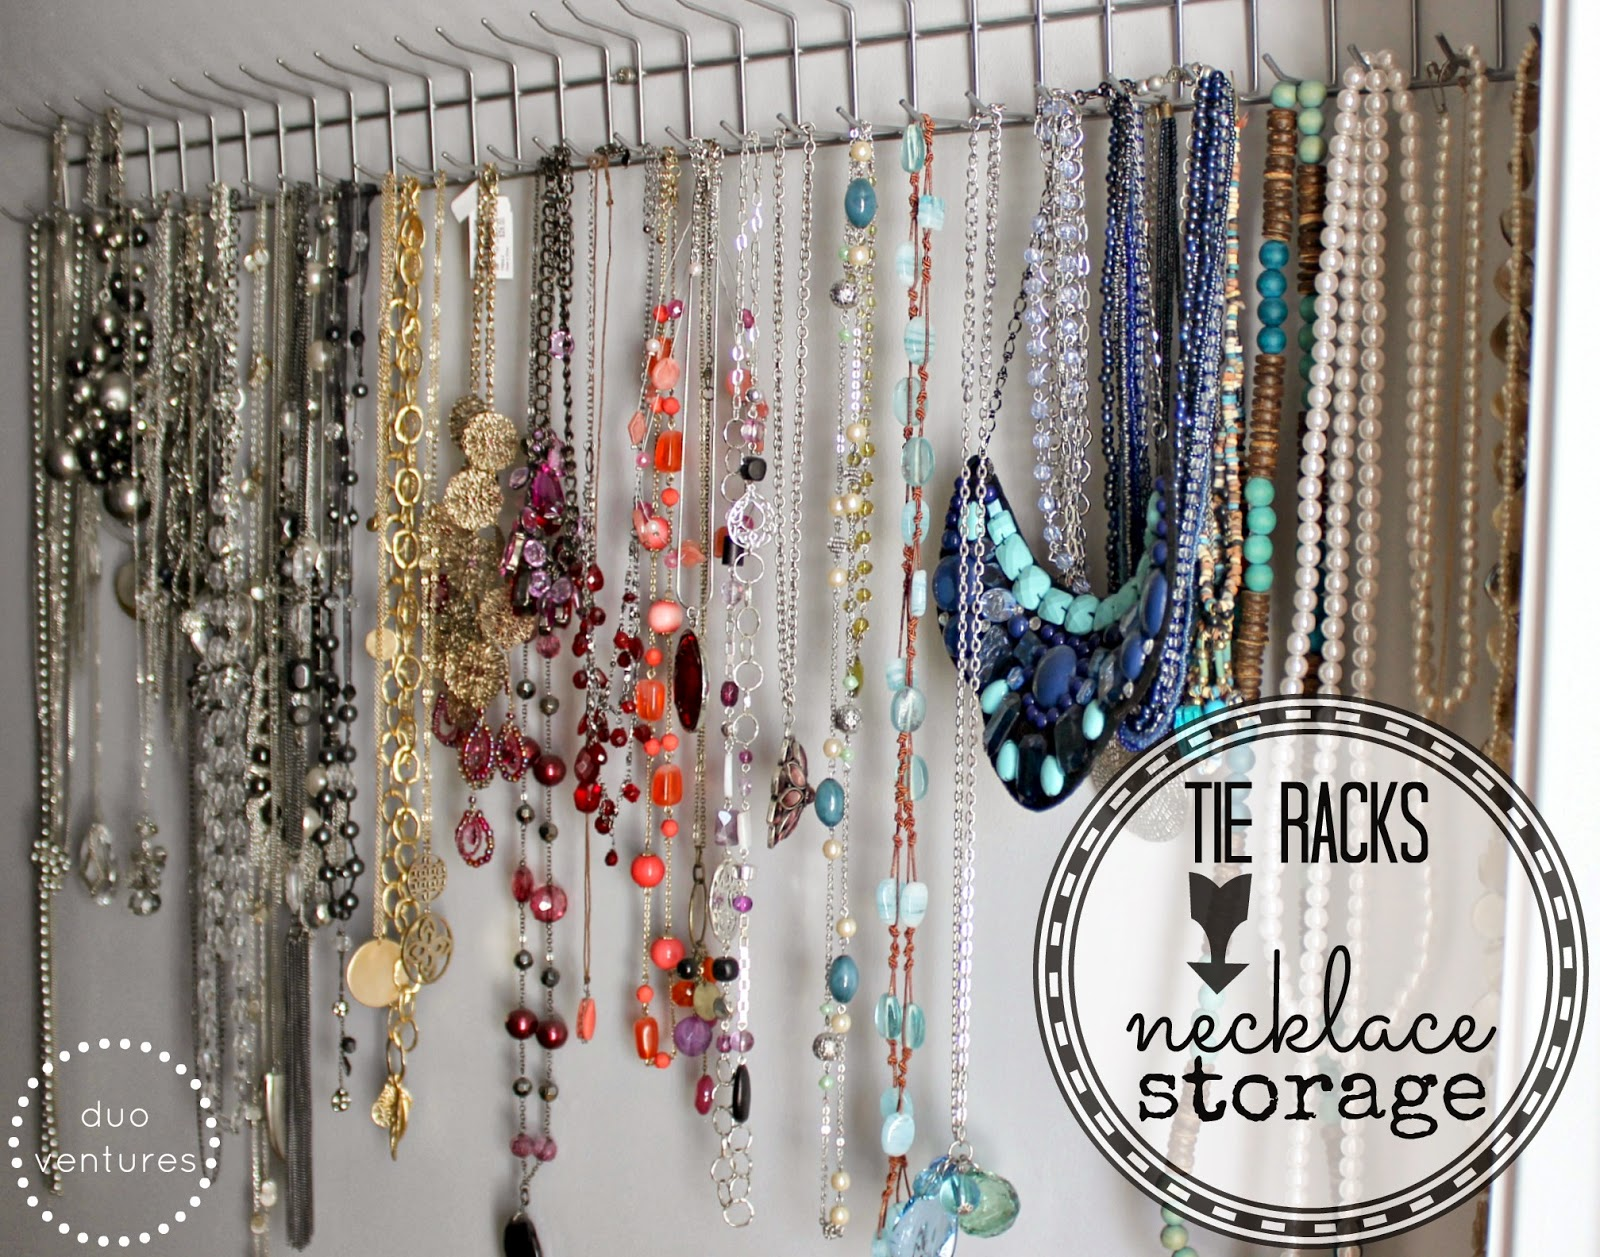 Right now, I am only using about half of the hooks - so there are plenty of  extra hooks to store any new necklaces that I might add to the collection.